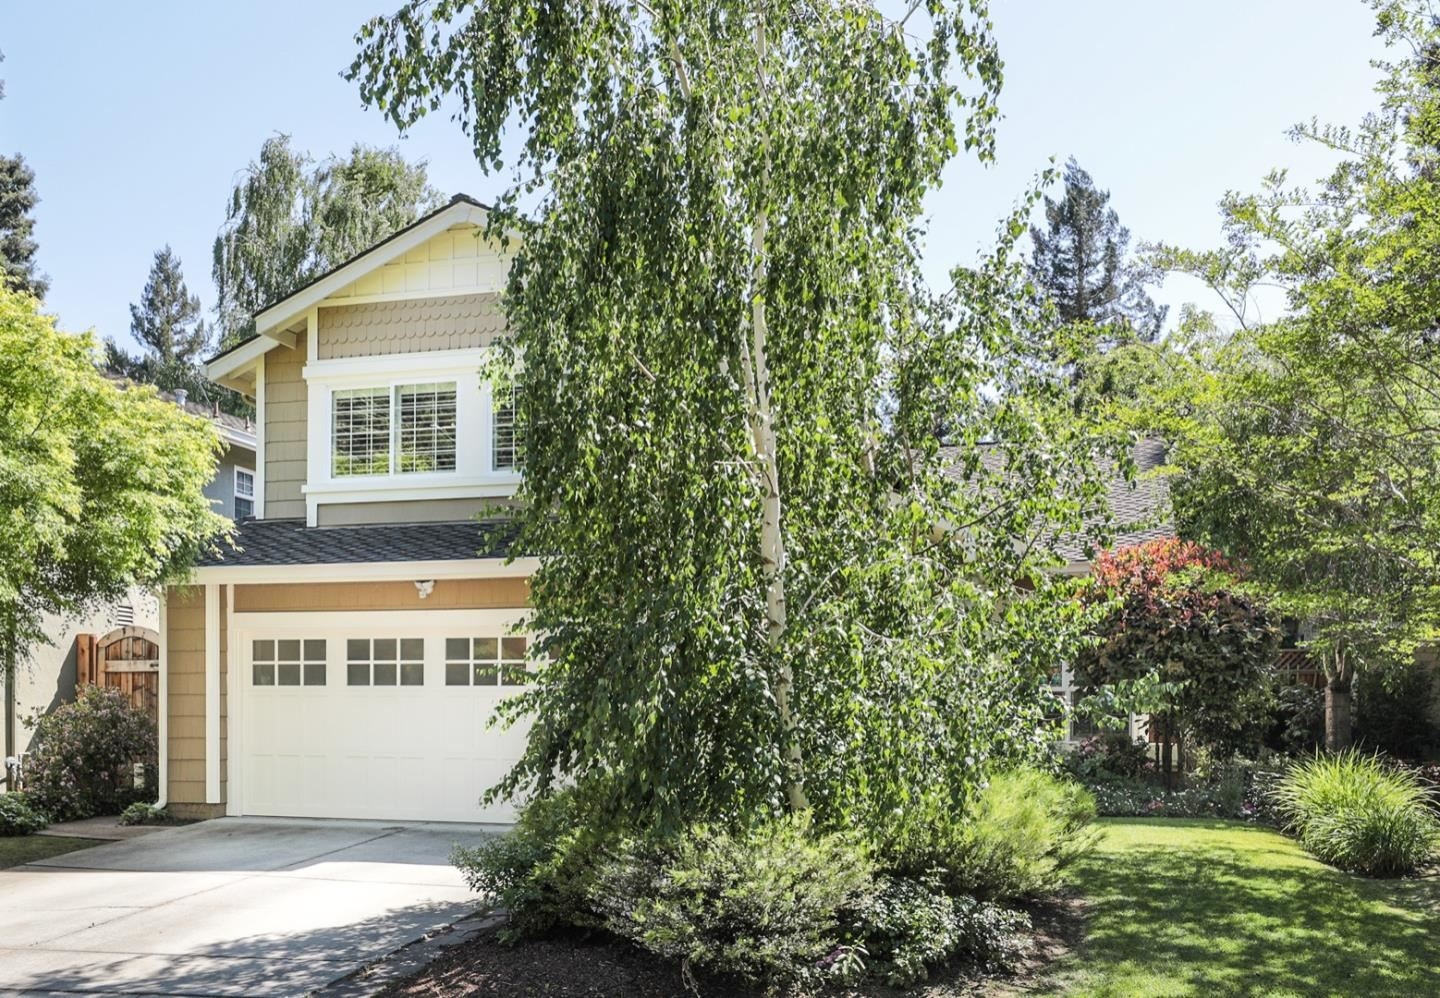 218 Brighton Lane, Redwood City, CA 94061 - #: ML81843180